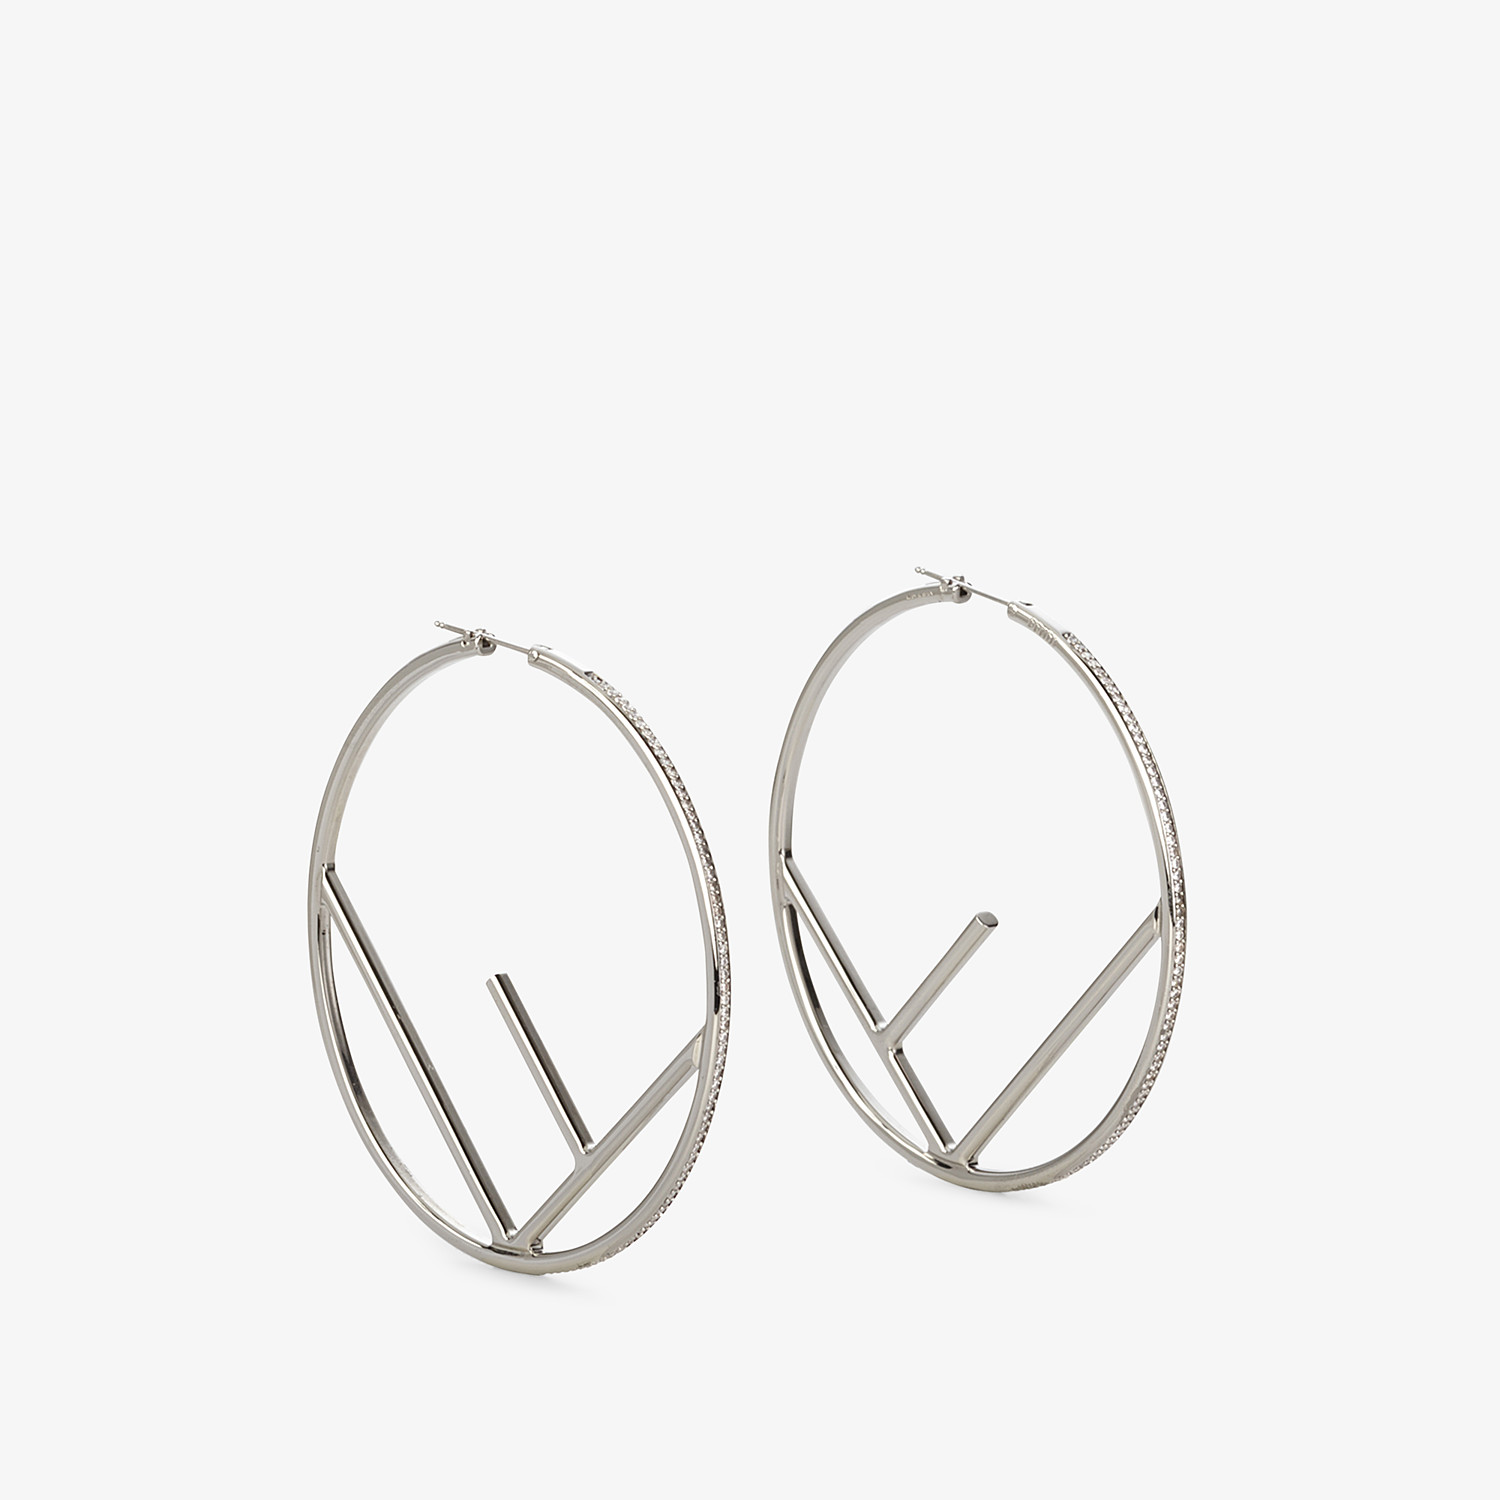 FENDI F IS FENDI EARRINGS - Silver-coloured earrings - view 1 detail